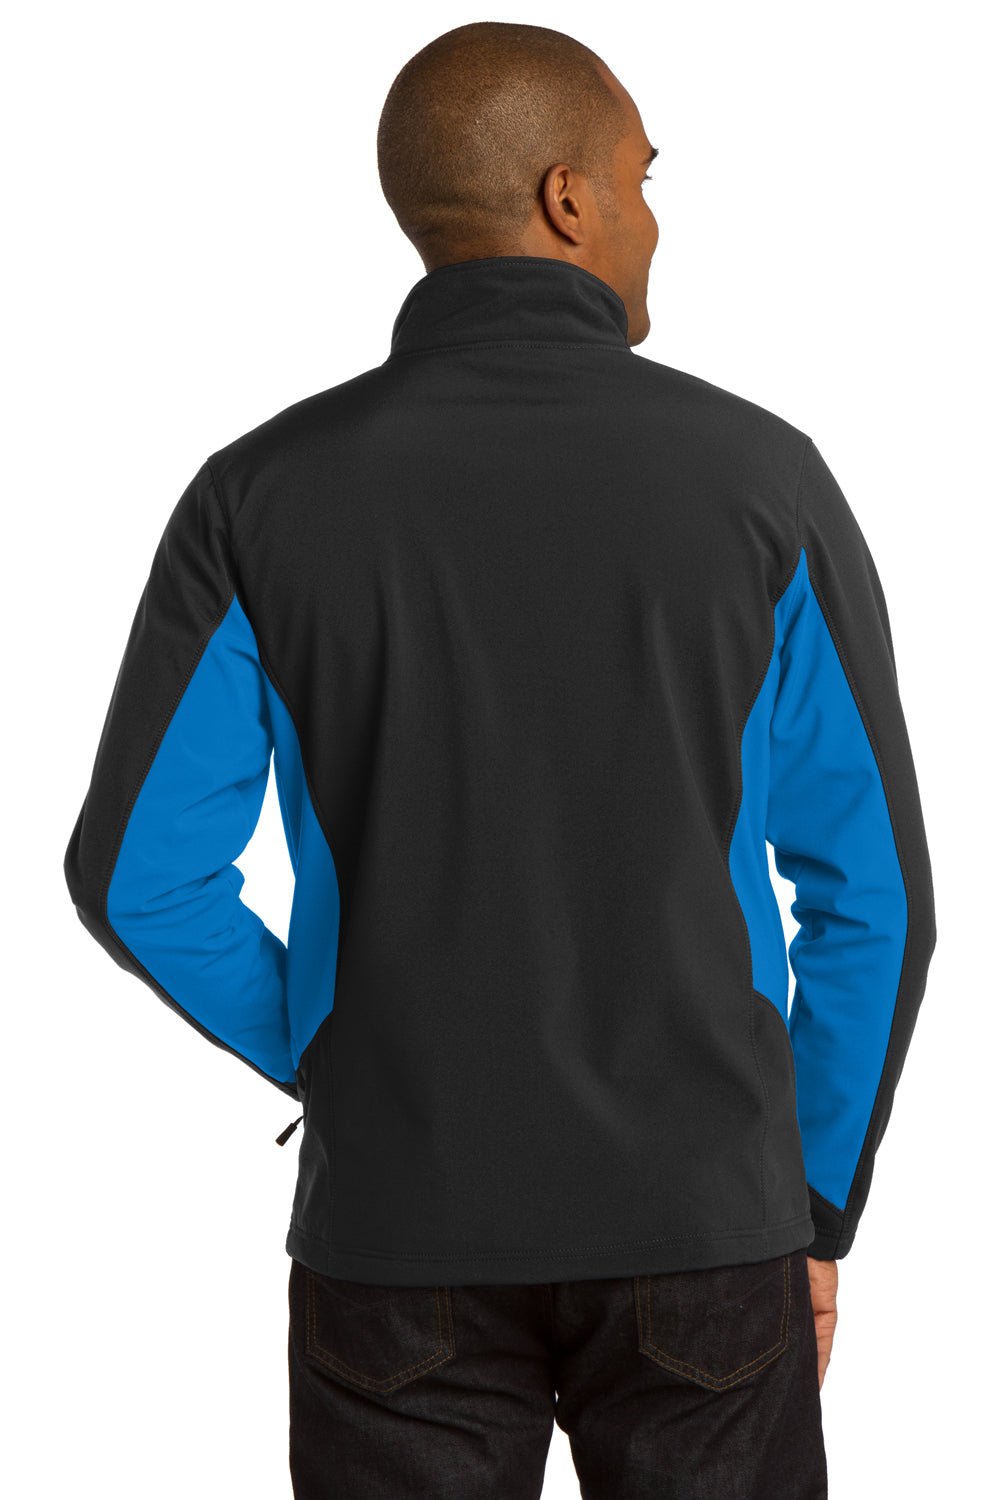 Port Authority J318 Mens Core Wind & Water Resistant Full Zip Jacket Black/Royal Blue Back